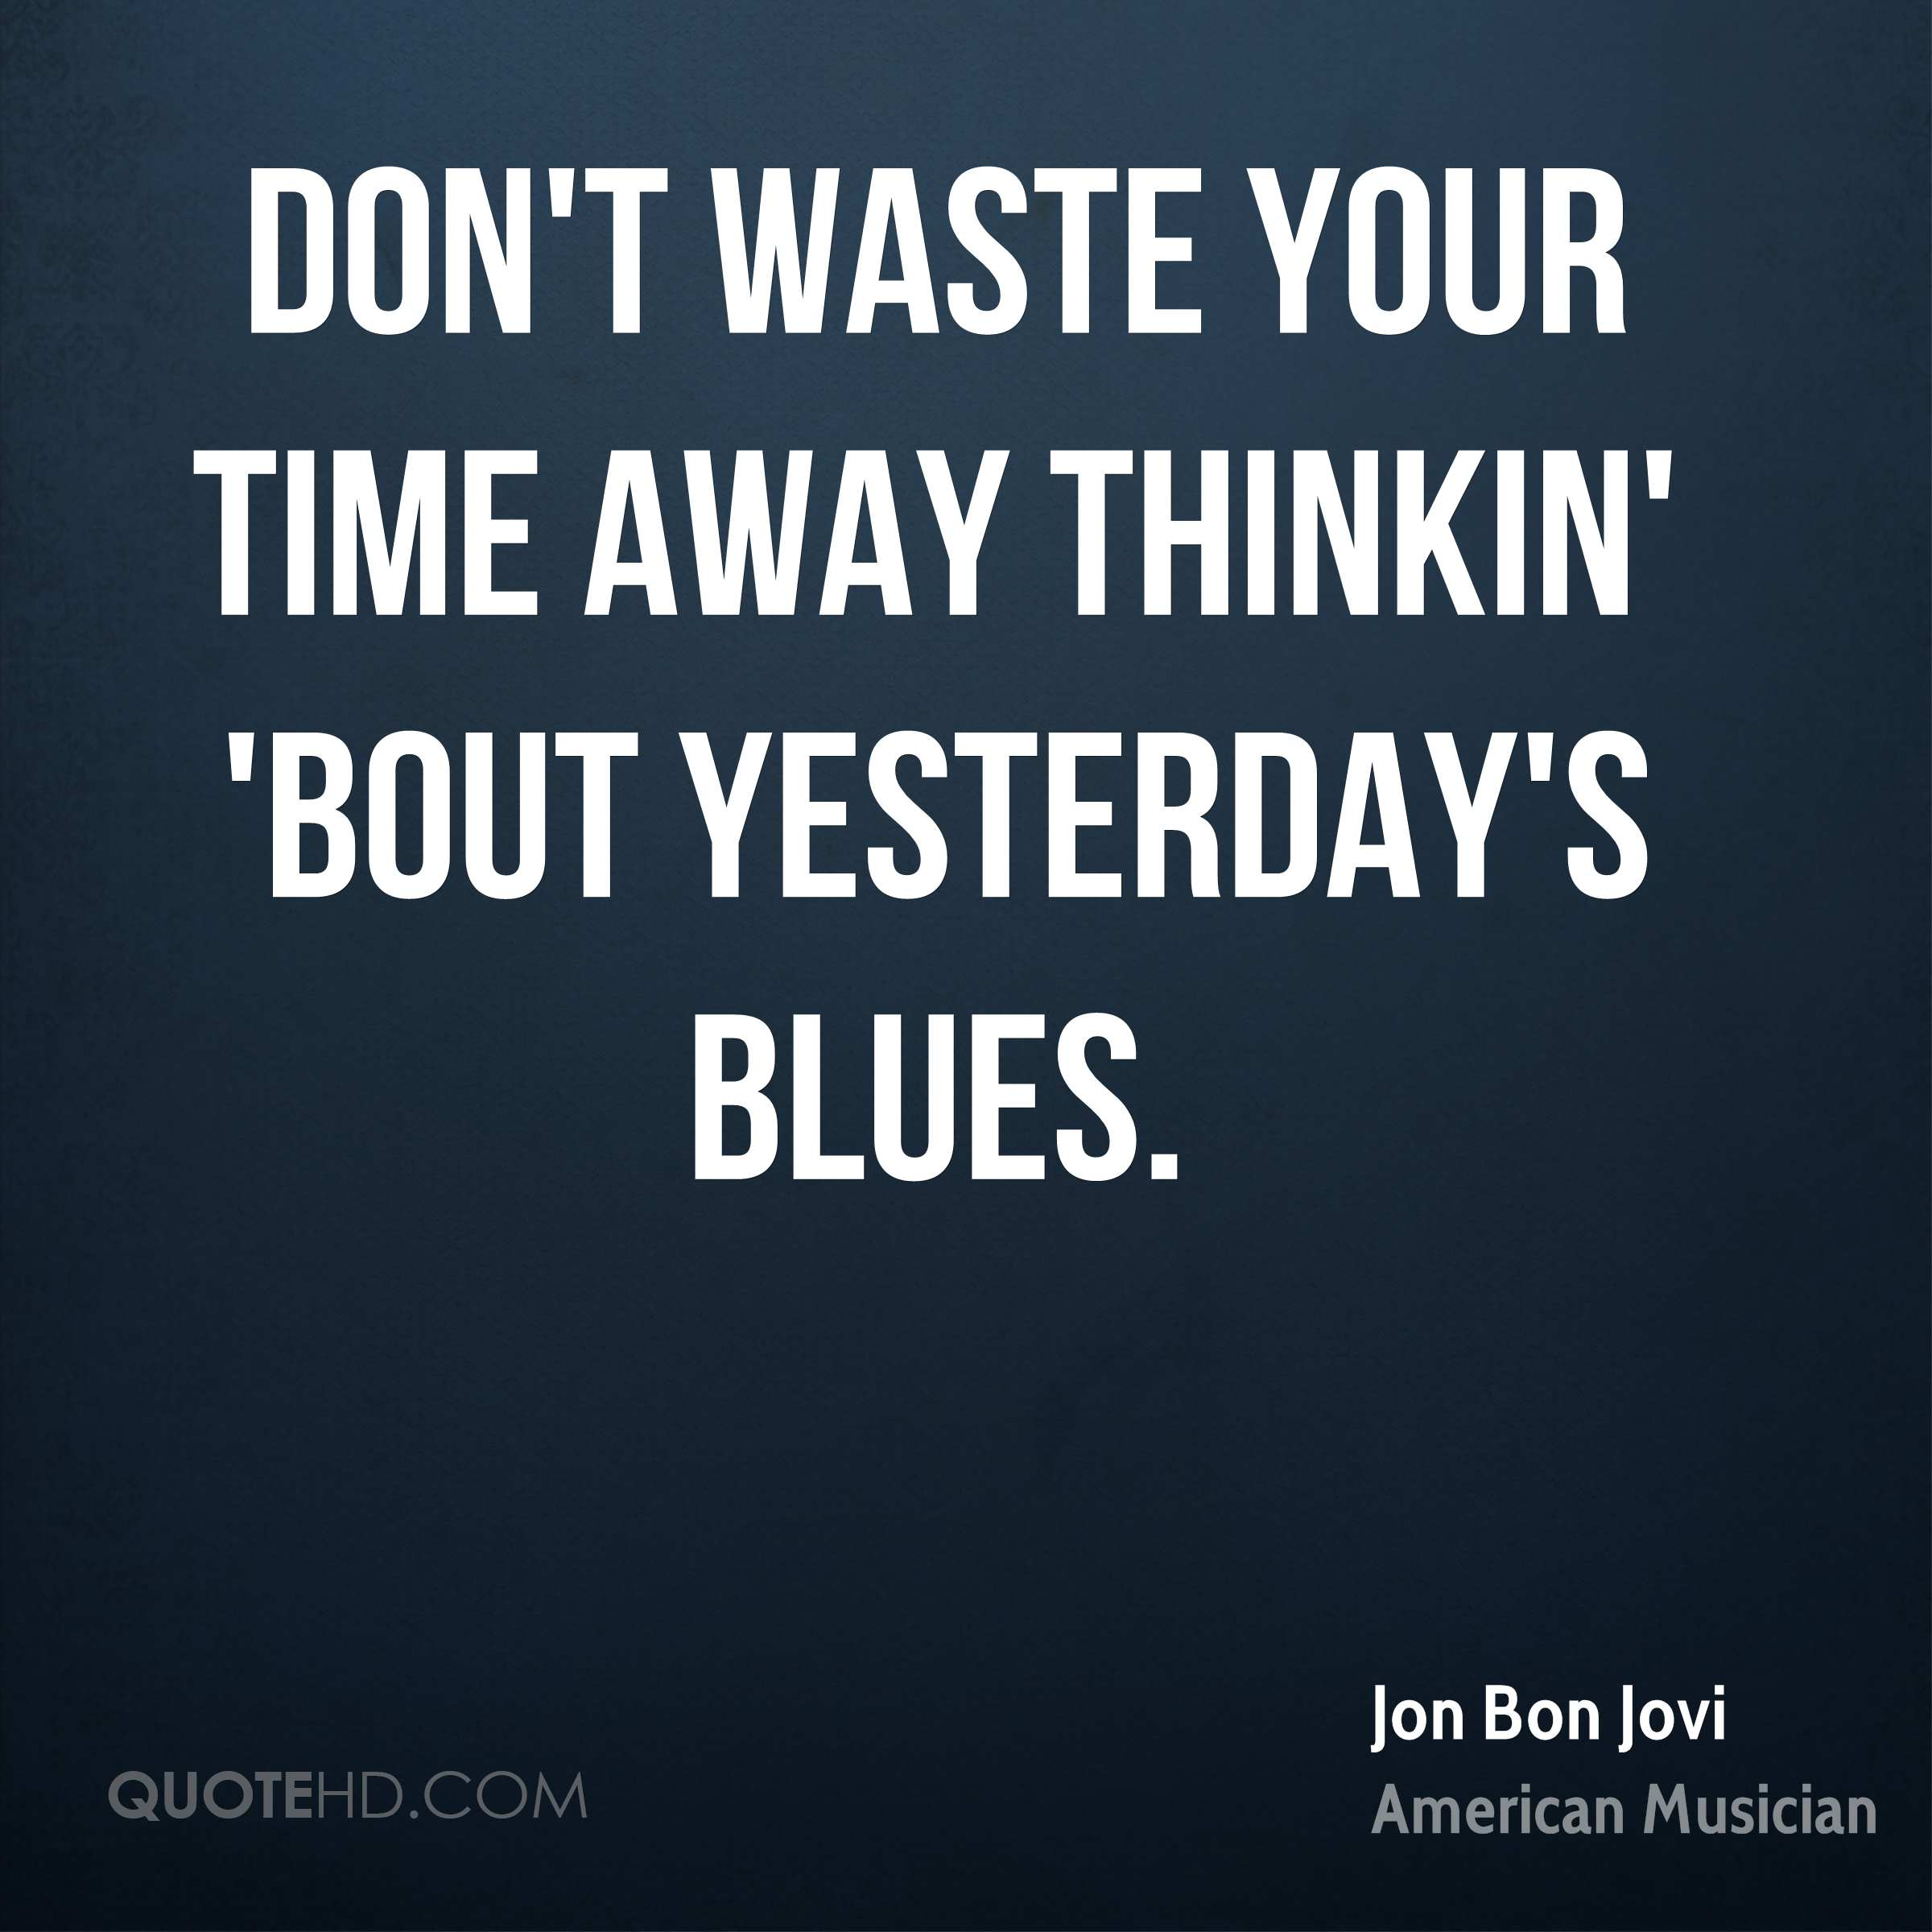 Don't waste your time away thinkin' 'bout yesterday's blues.